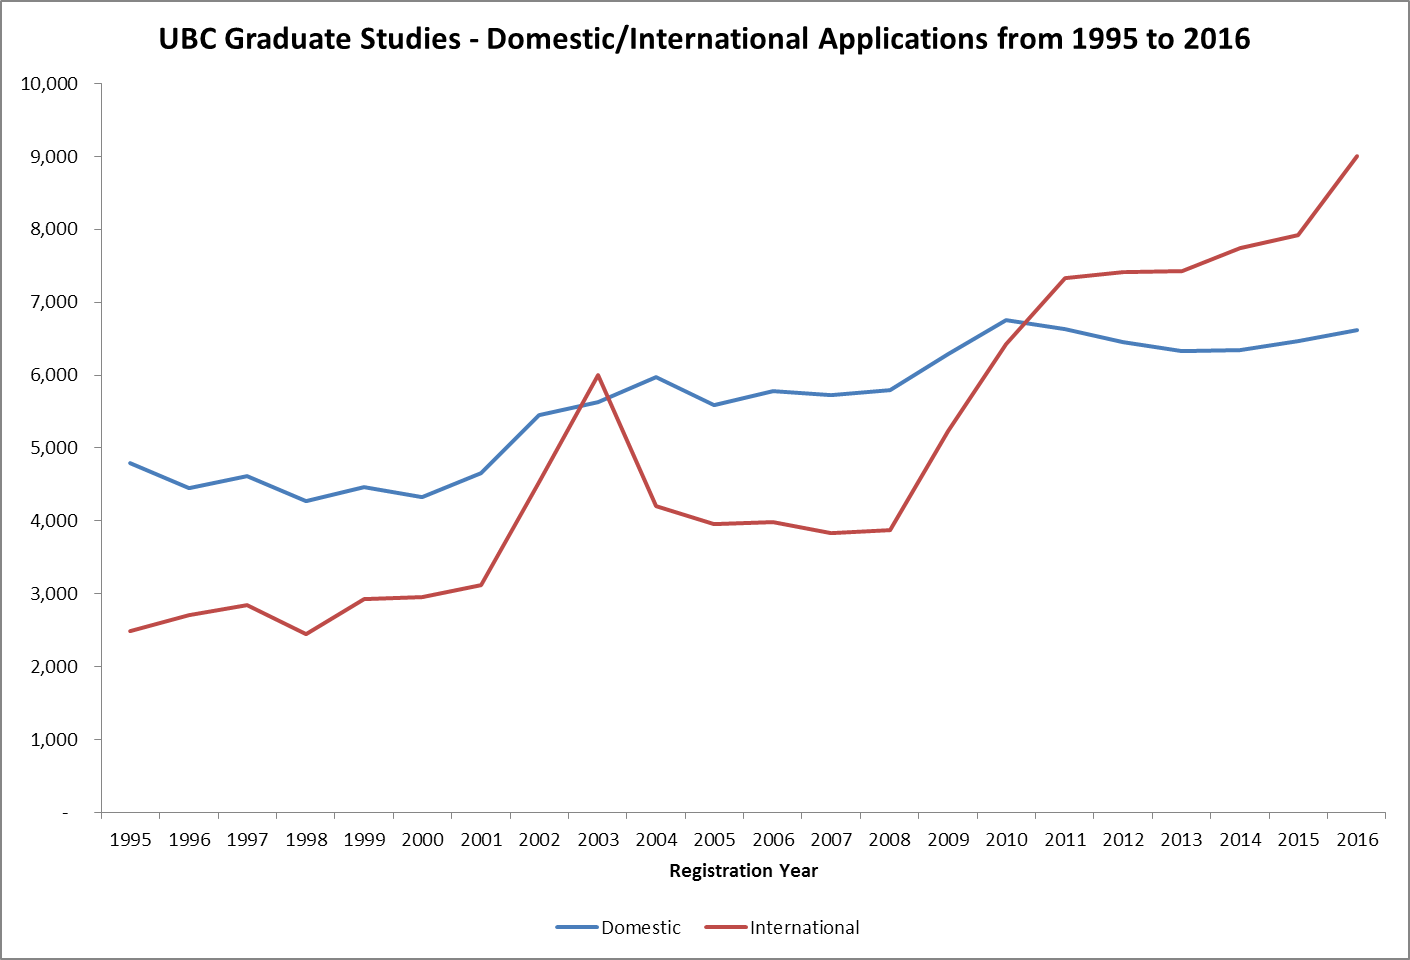 UBC Graduate Studies - Masters and Doctoral International Application Numbers from 1995 to 2016